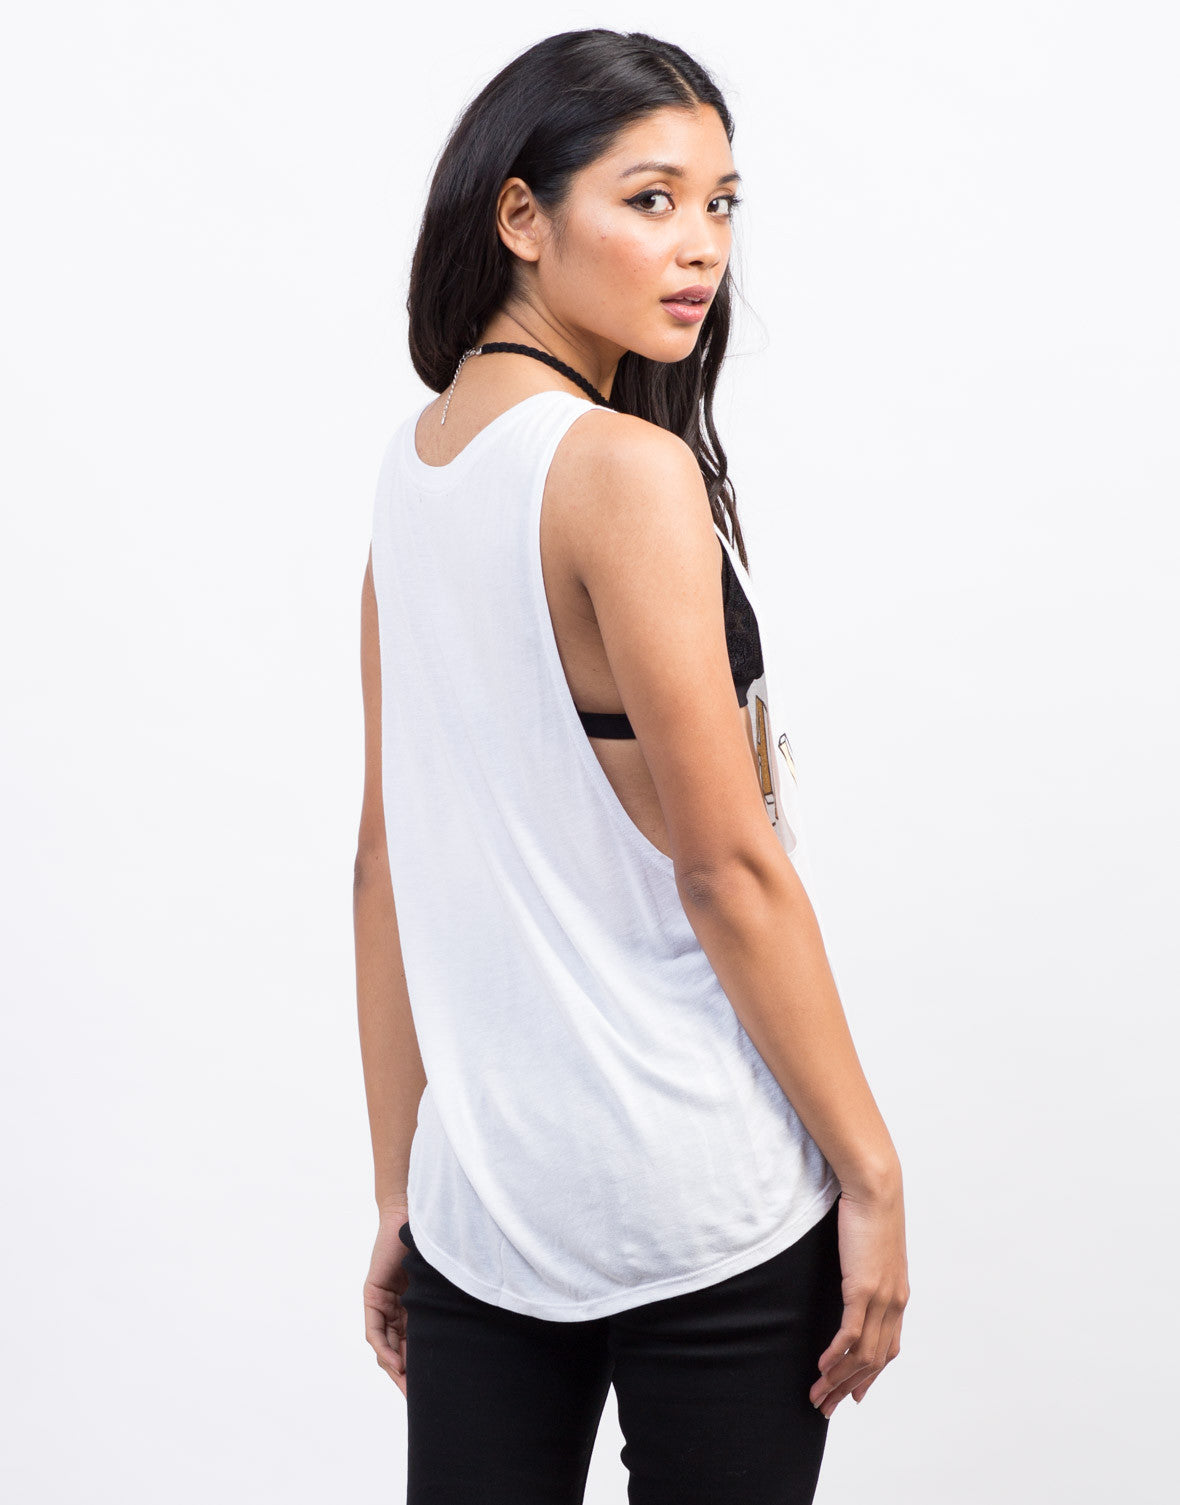 Back View of Wander Lust Graphic Tank